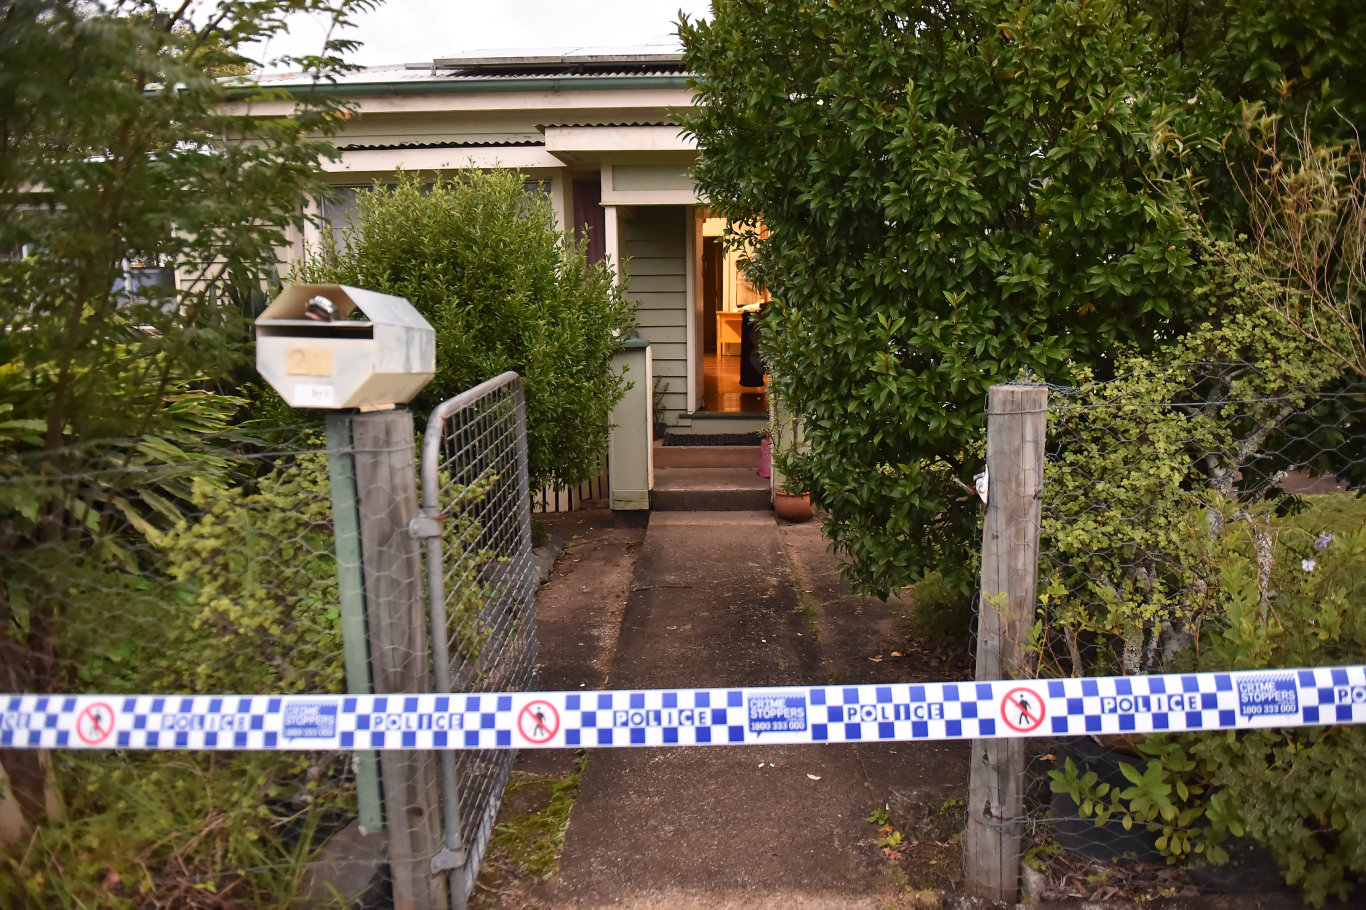 POLICE are investigating the suspicious death of a middle-aged man who was initially thought to have suffered a fall at a Maleny home.